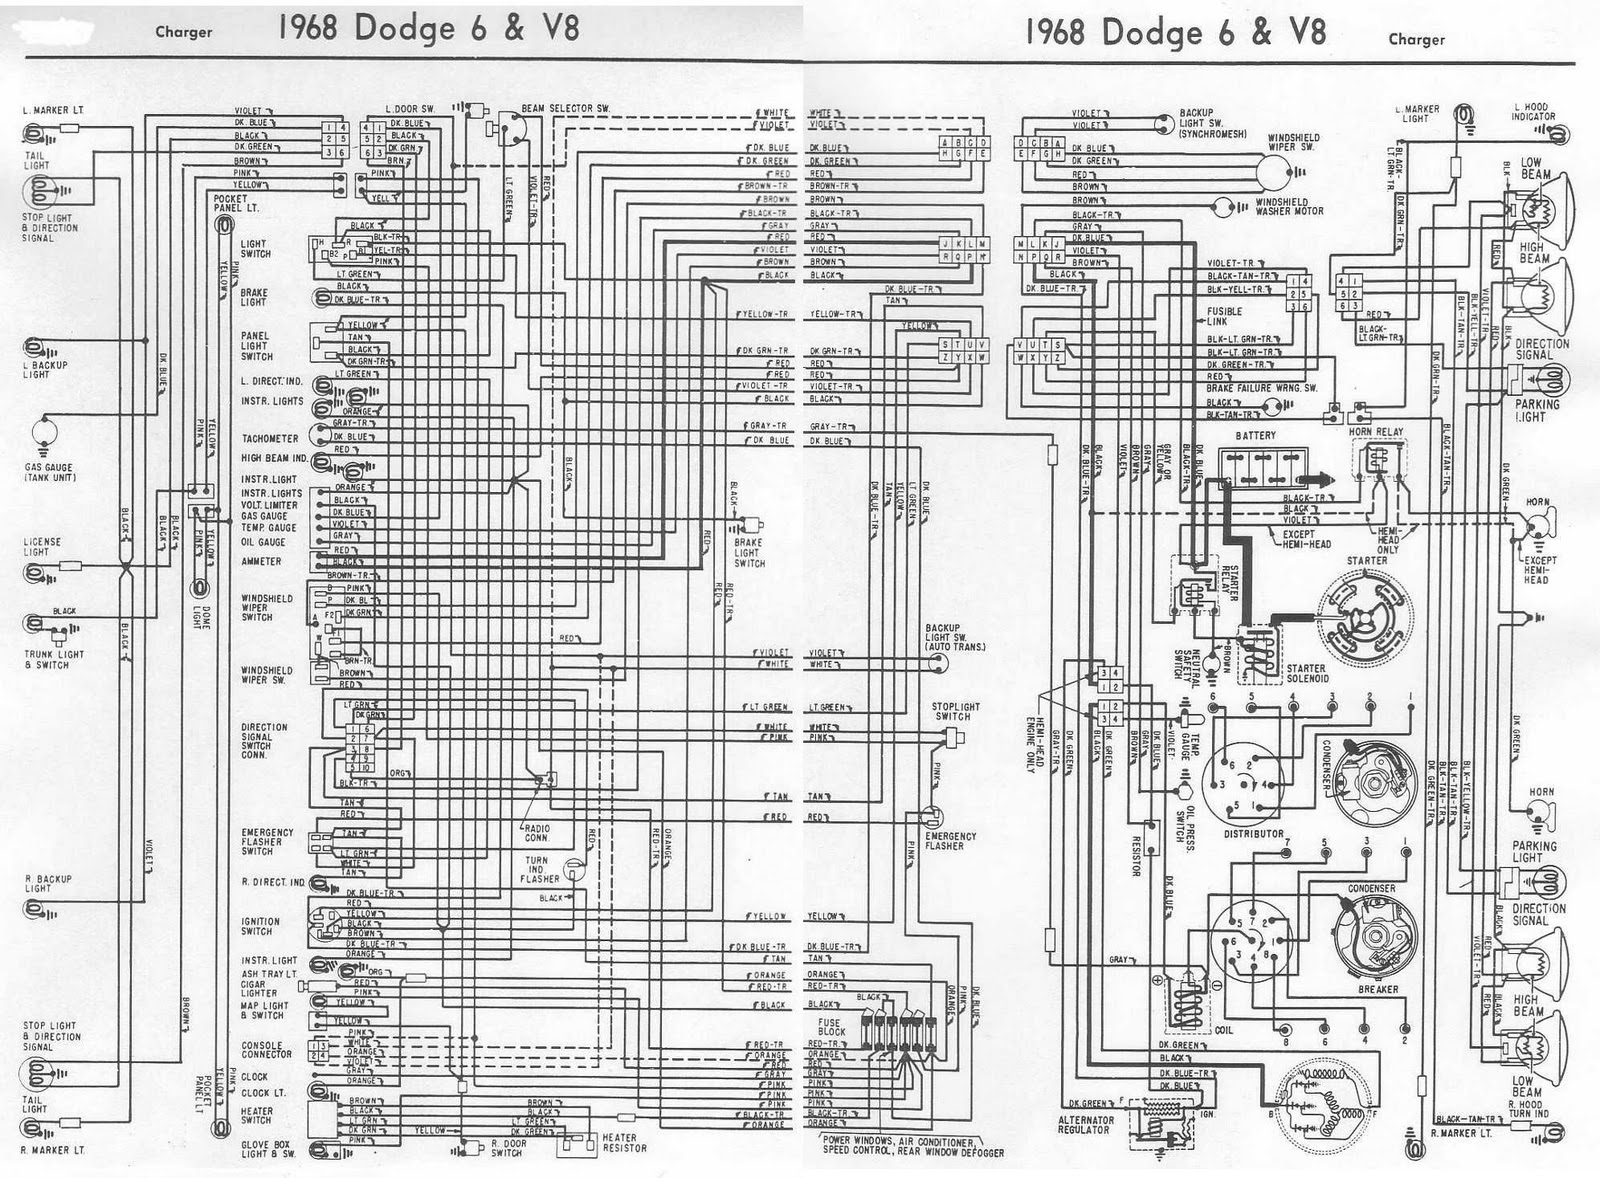 Electrical Wiring Diagram from 4.bp.blogspot.com